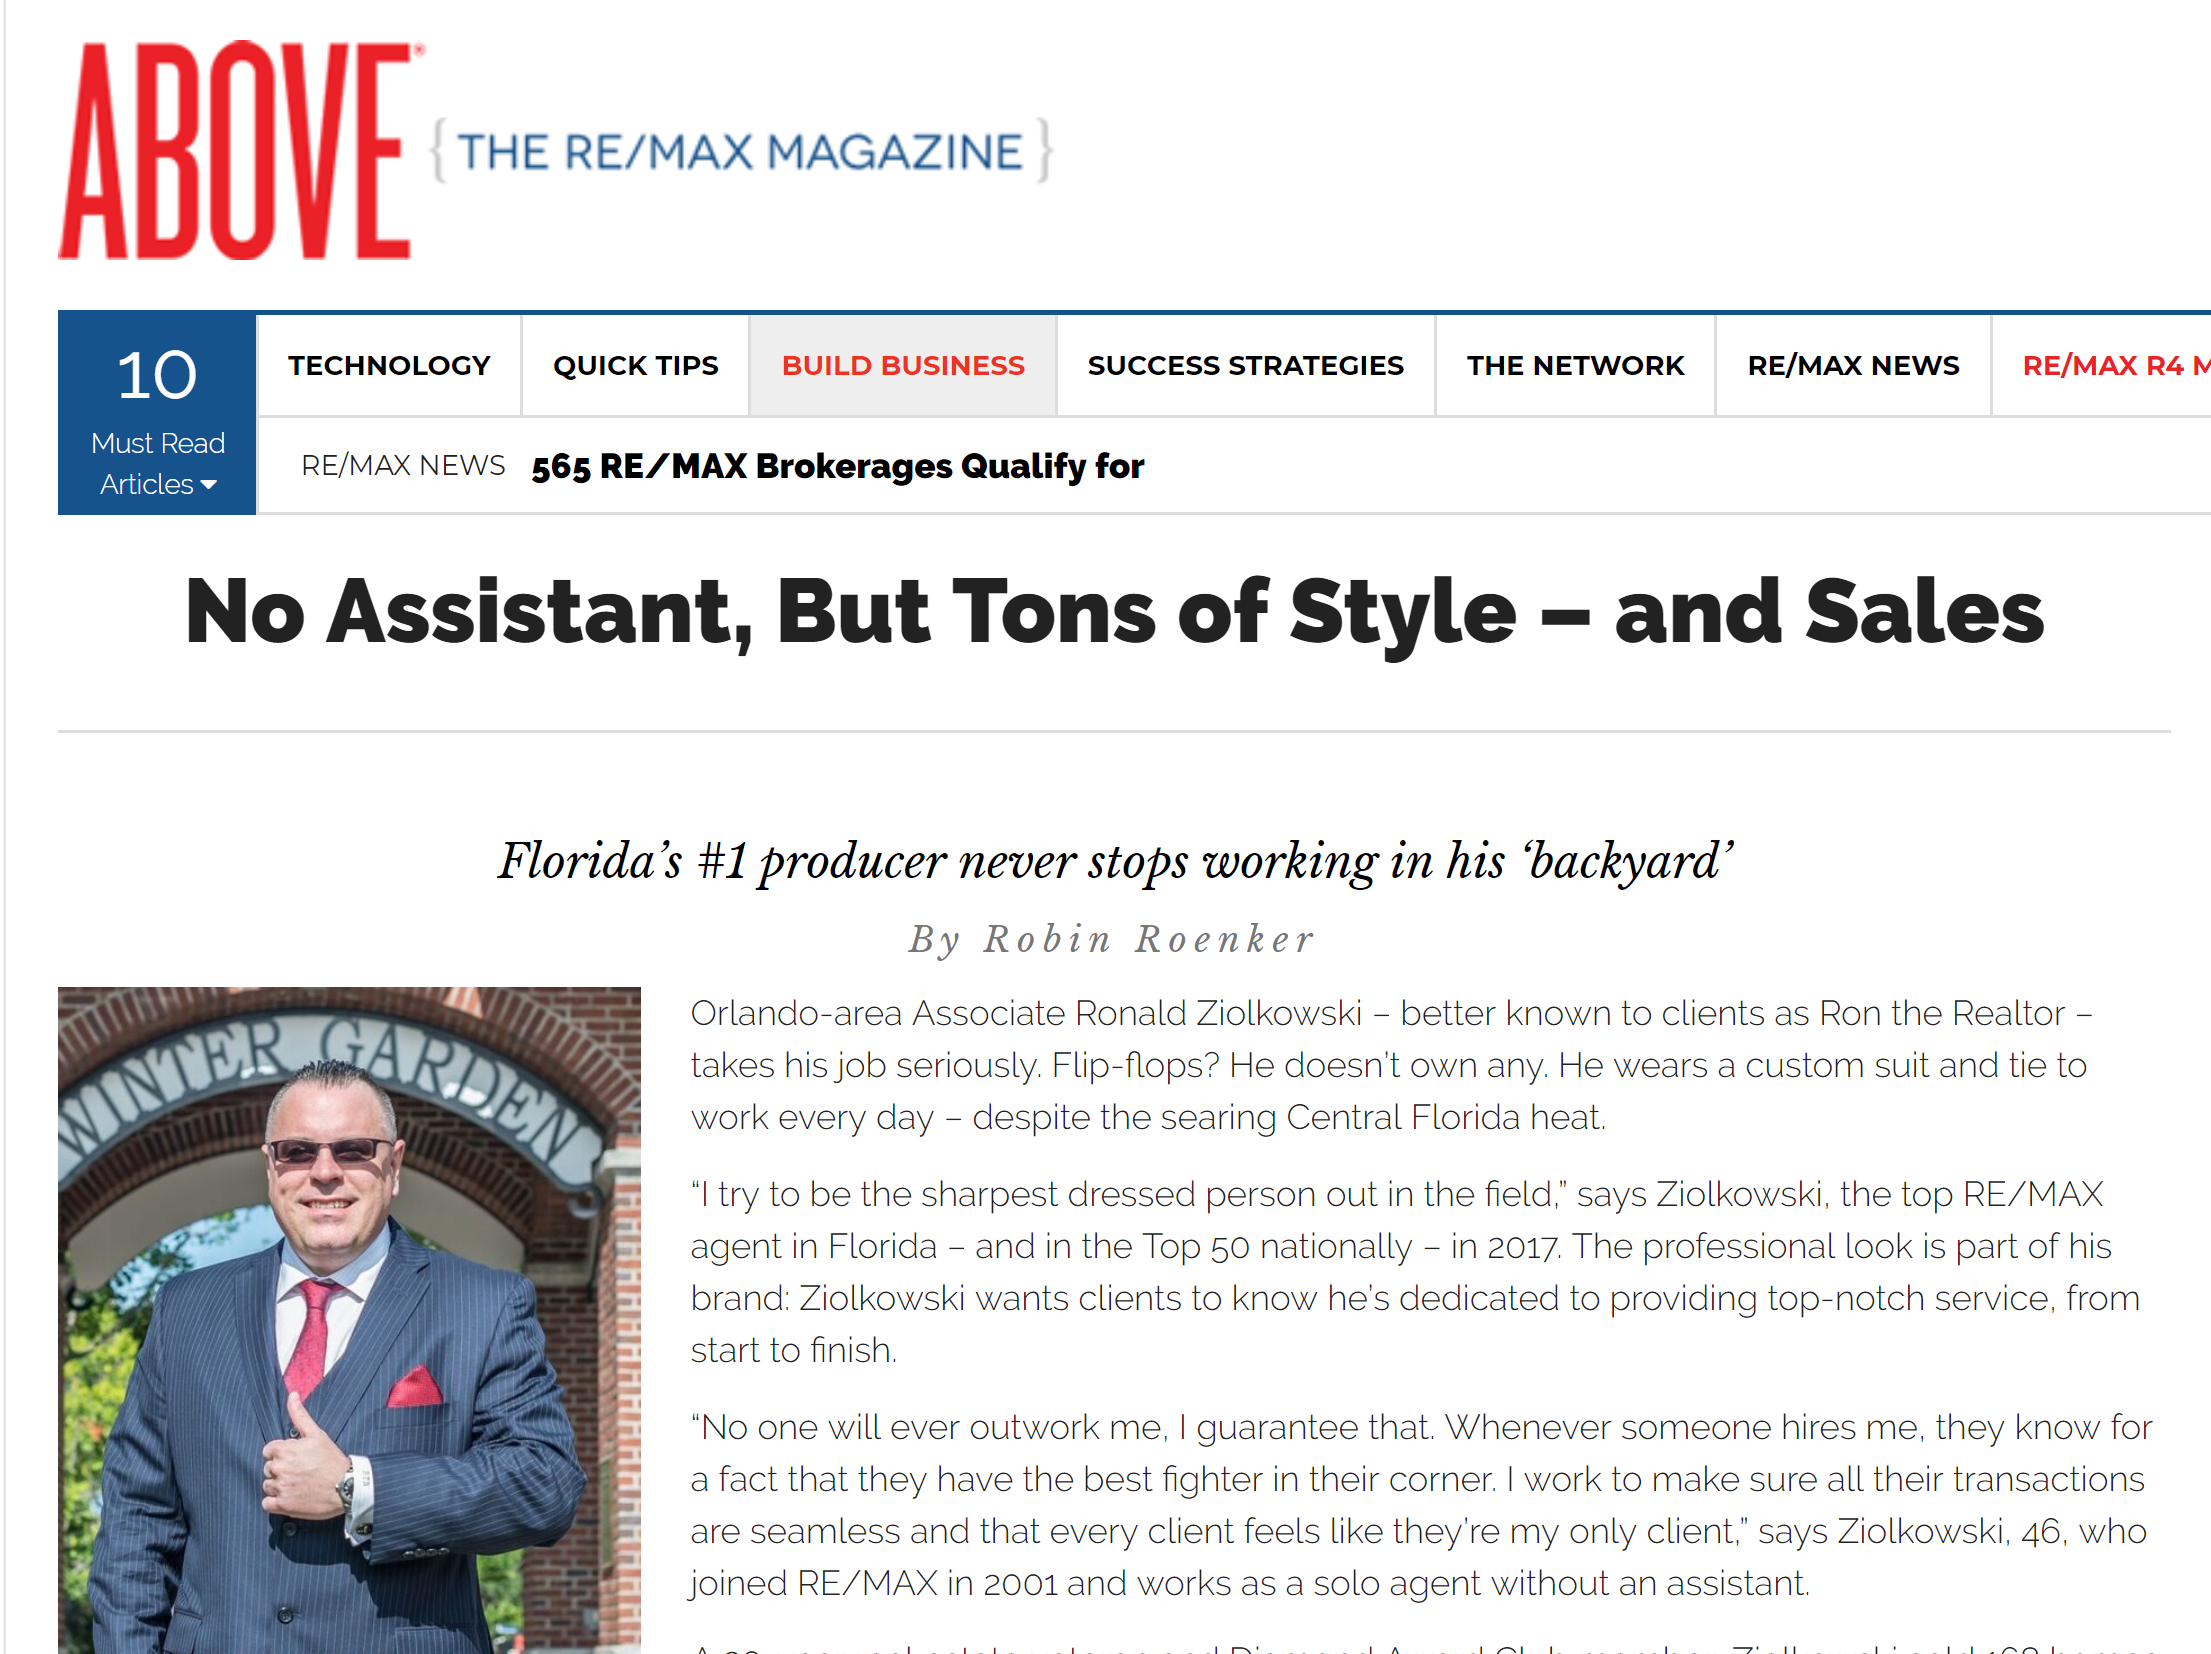 Remax Above Mag: No Assistant, But Tons of Style – and Sales